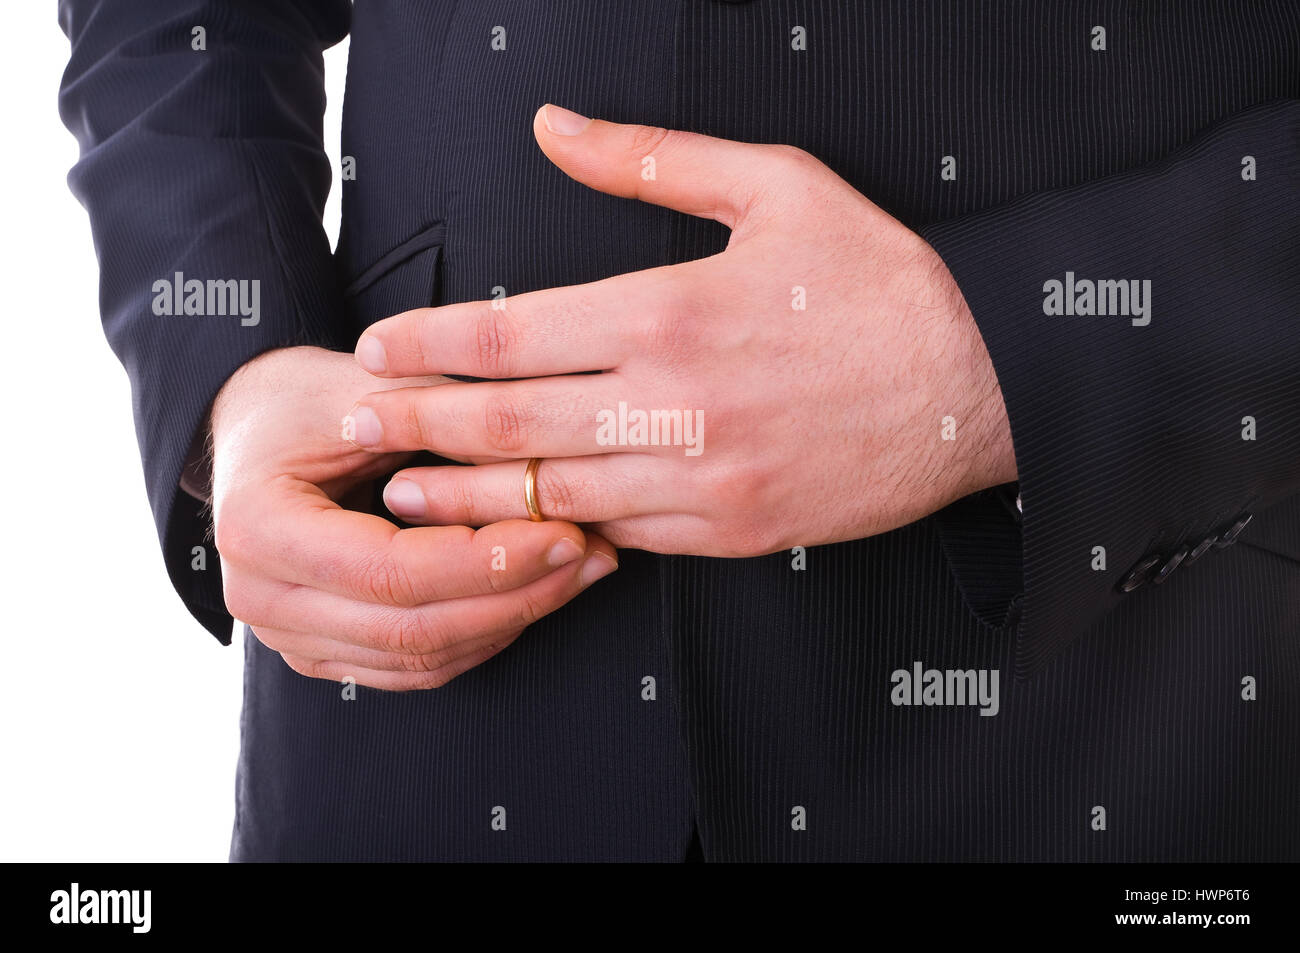 Ring Leader Stock Photos & Ring Leader Stock Images - Page 2 - Alamy